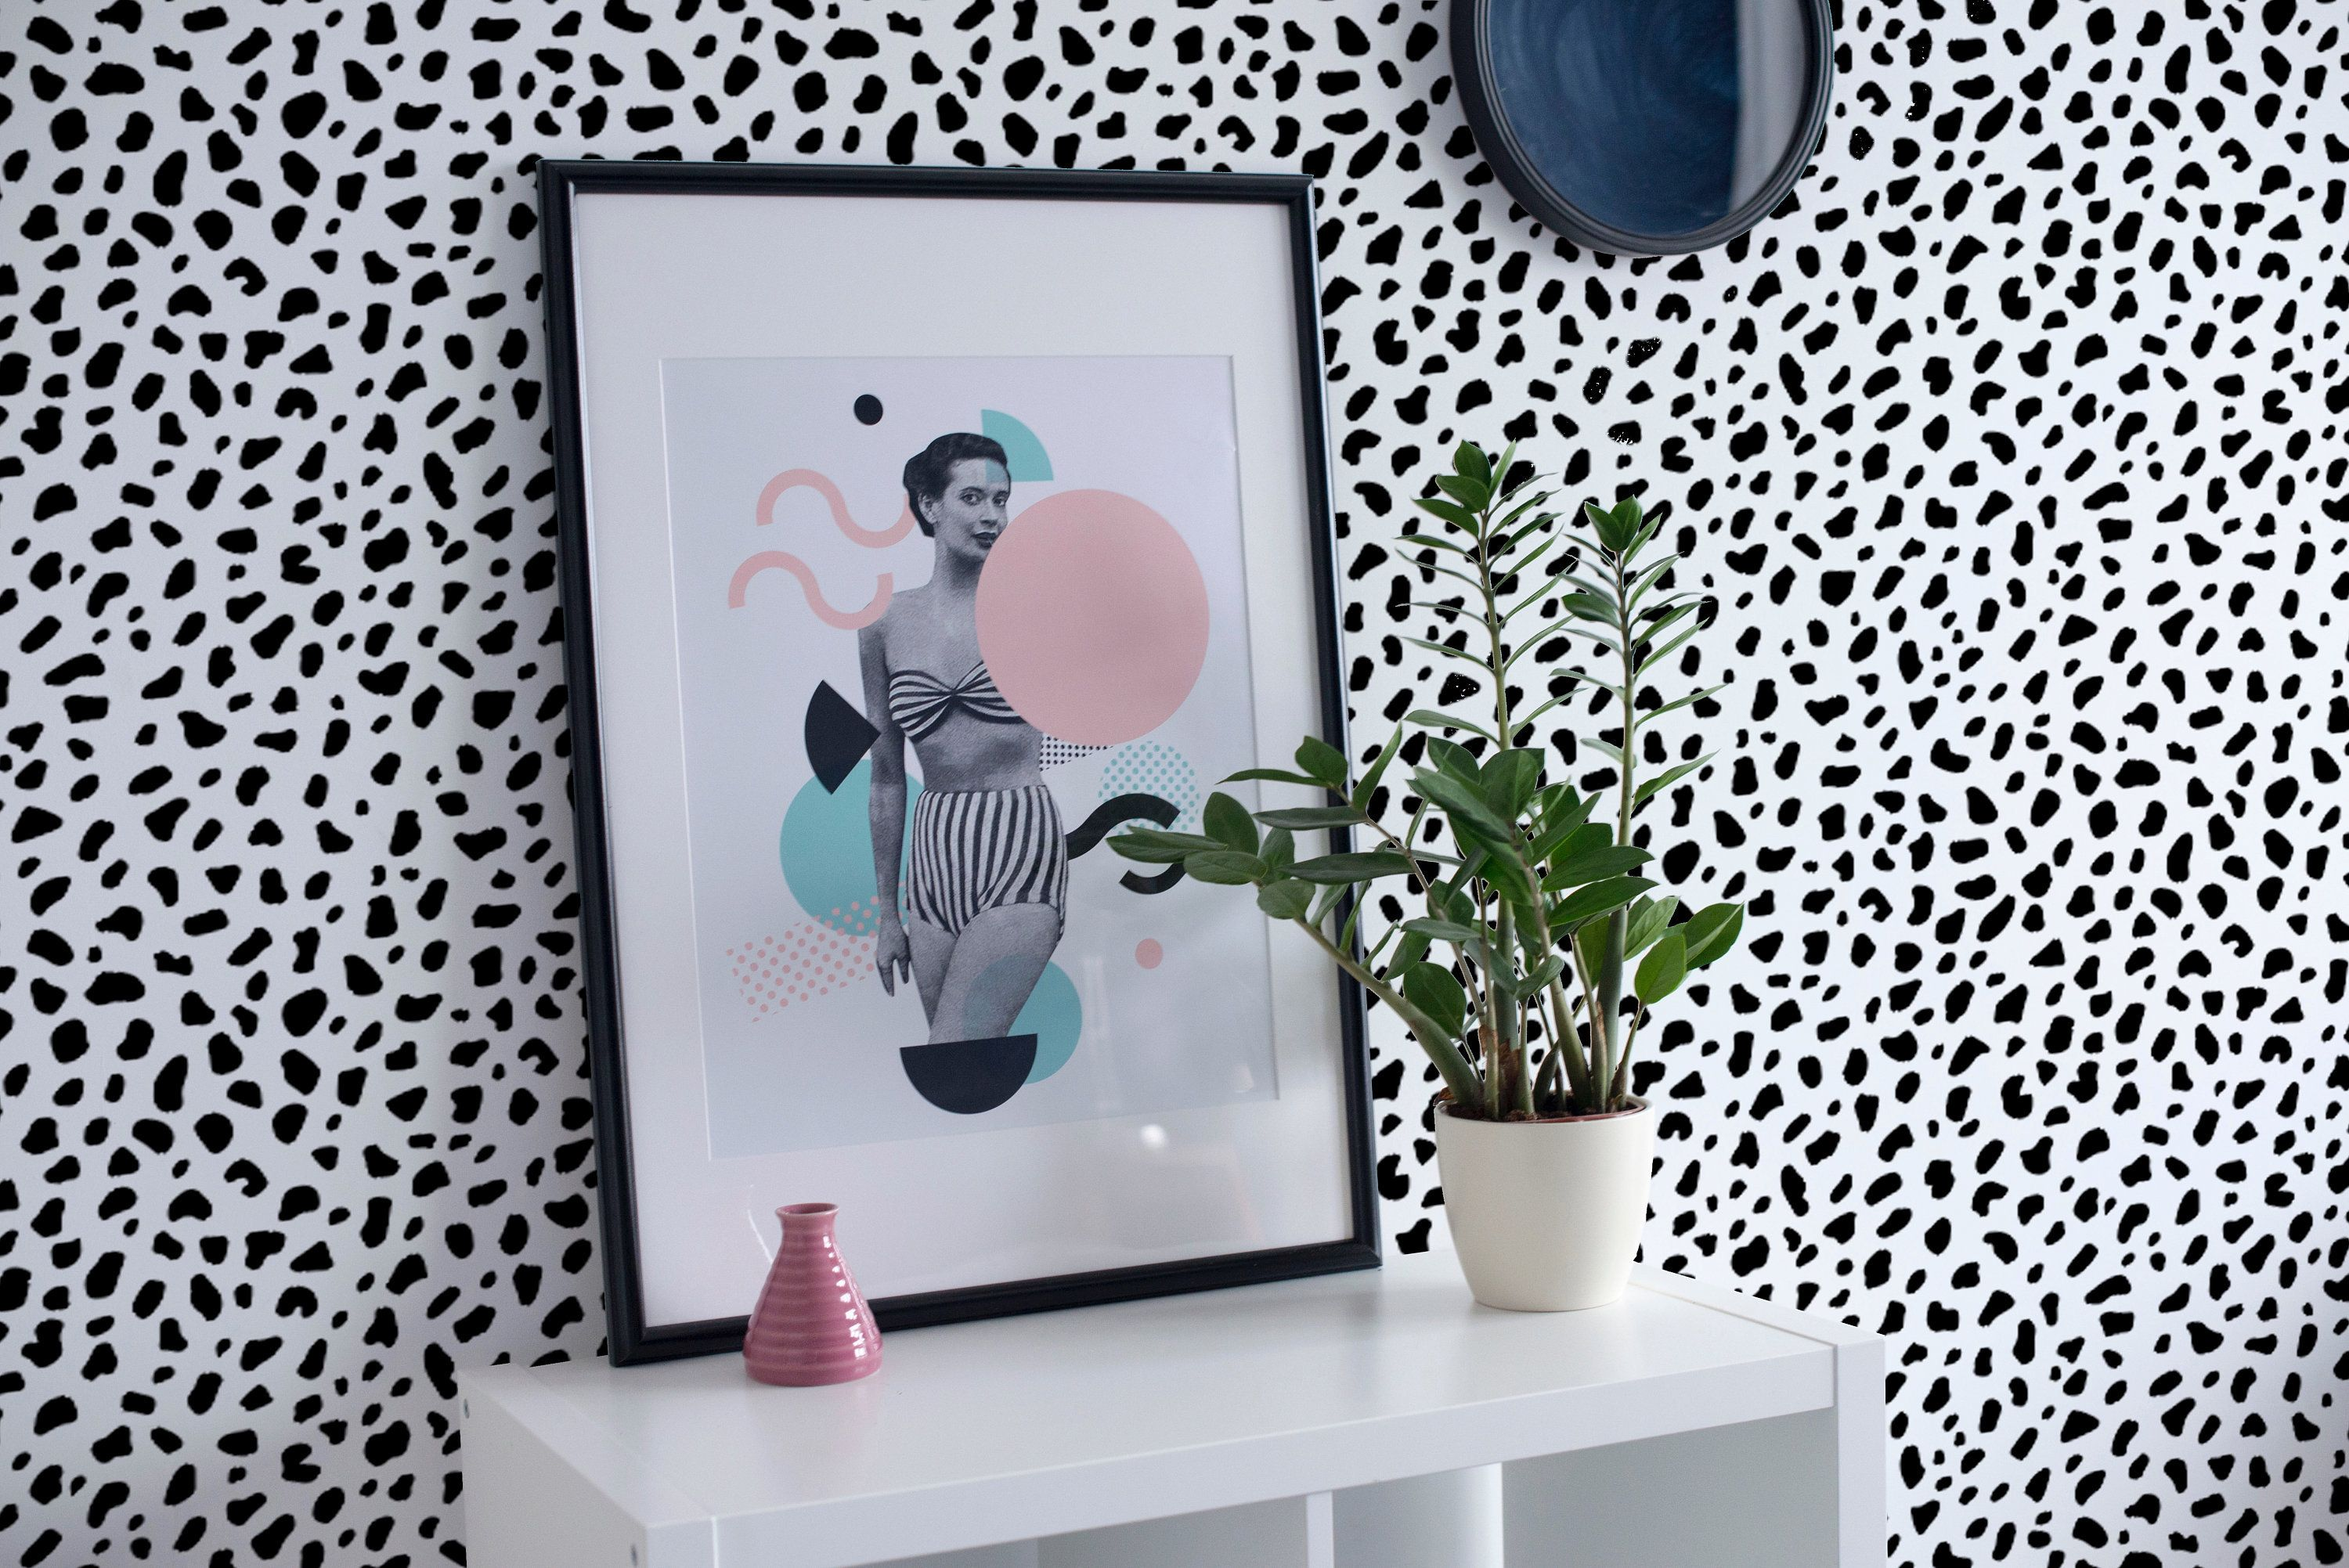 Removable Wallpaper Peel And Stick Wallpaper Animal Print Removable Wallpaper Nursery Wallpaper Peel And Stick Wallpaper